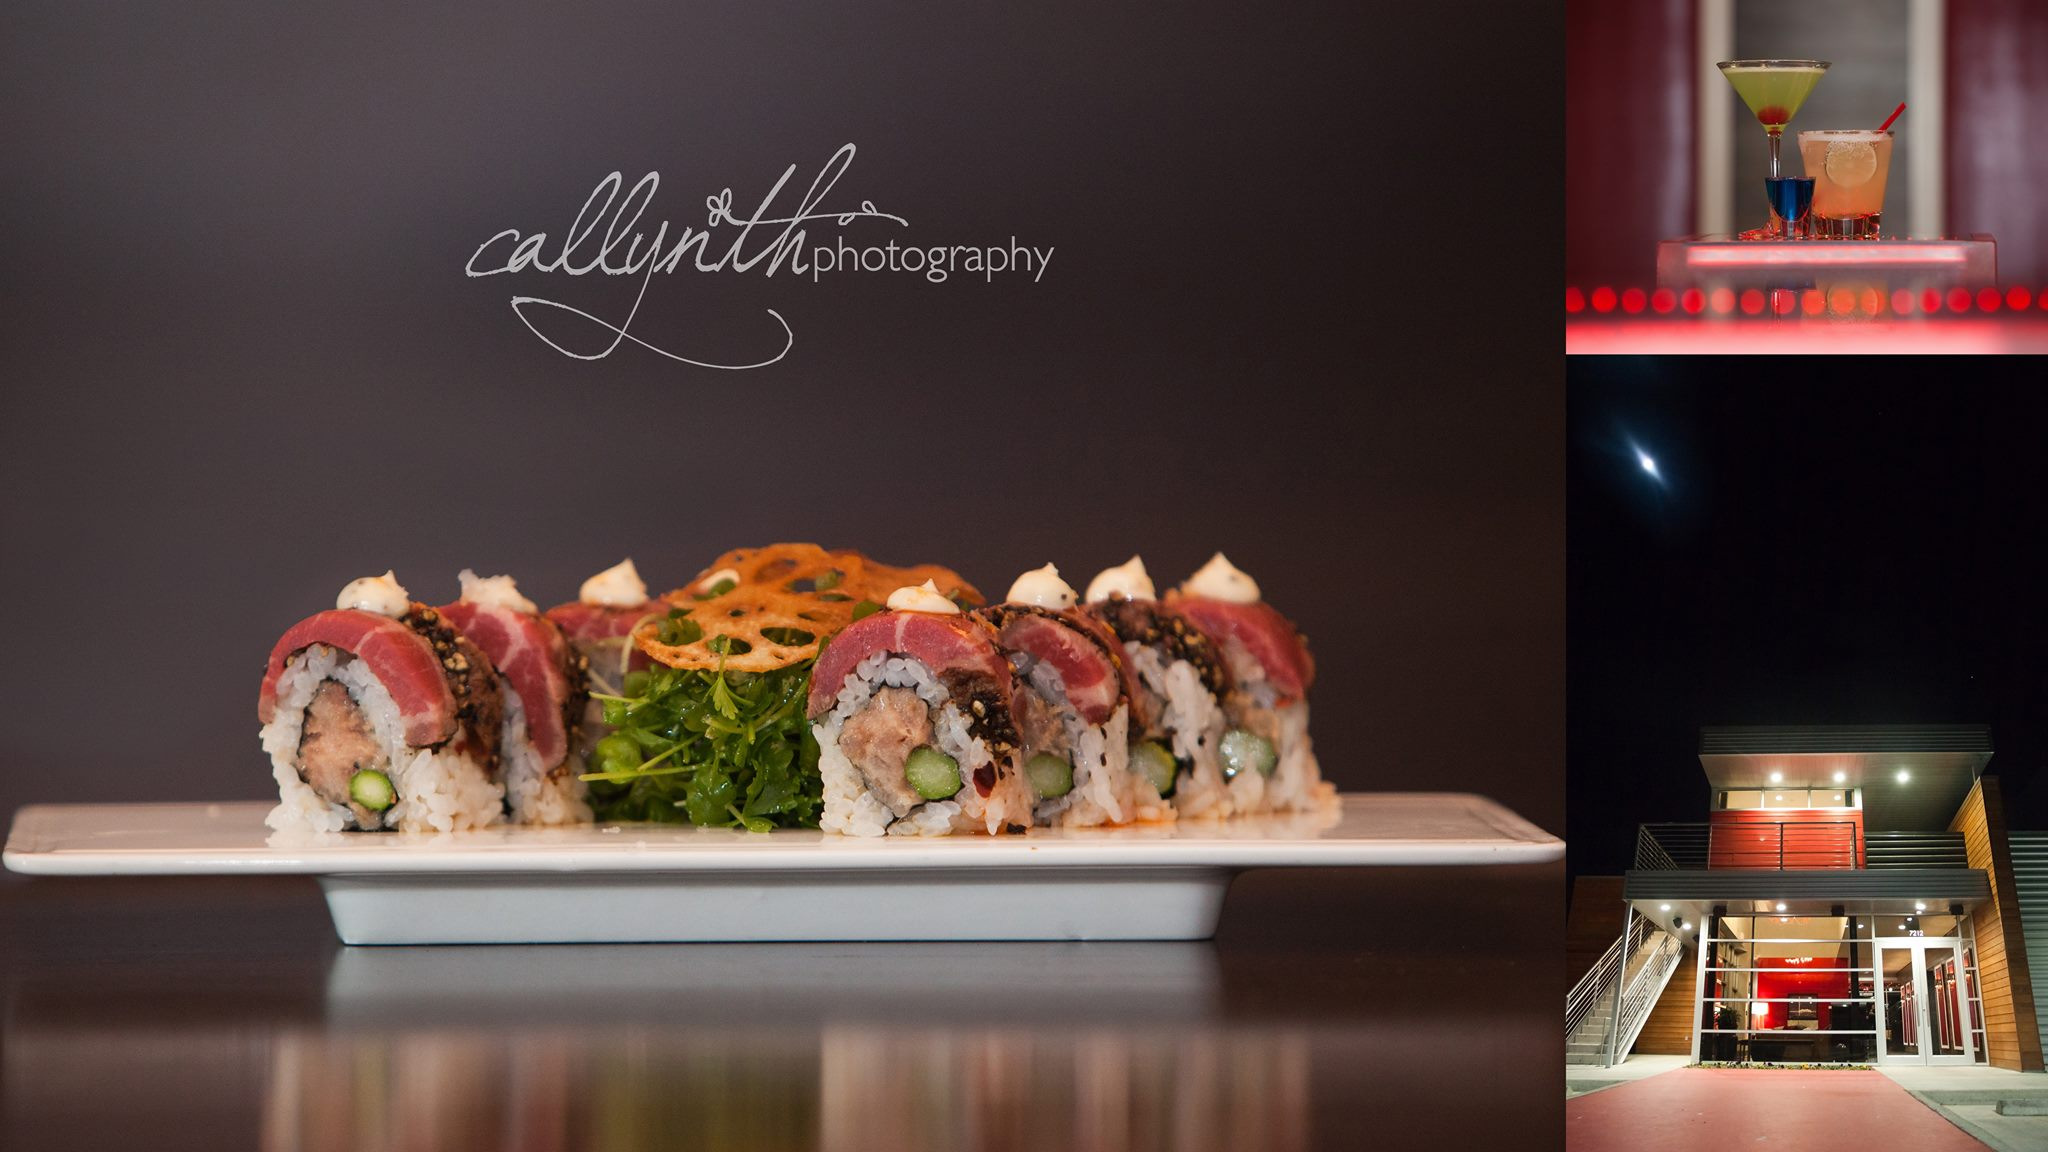 Food & Product Photography